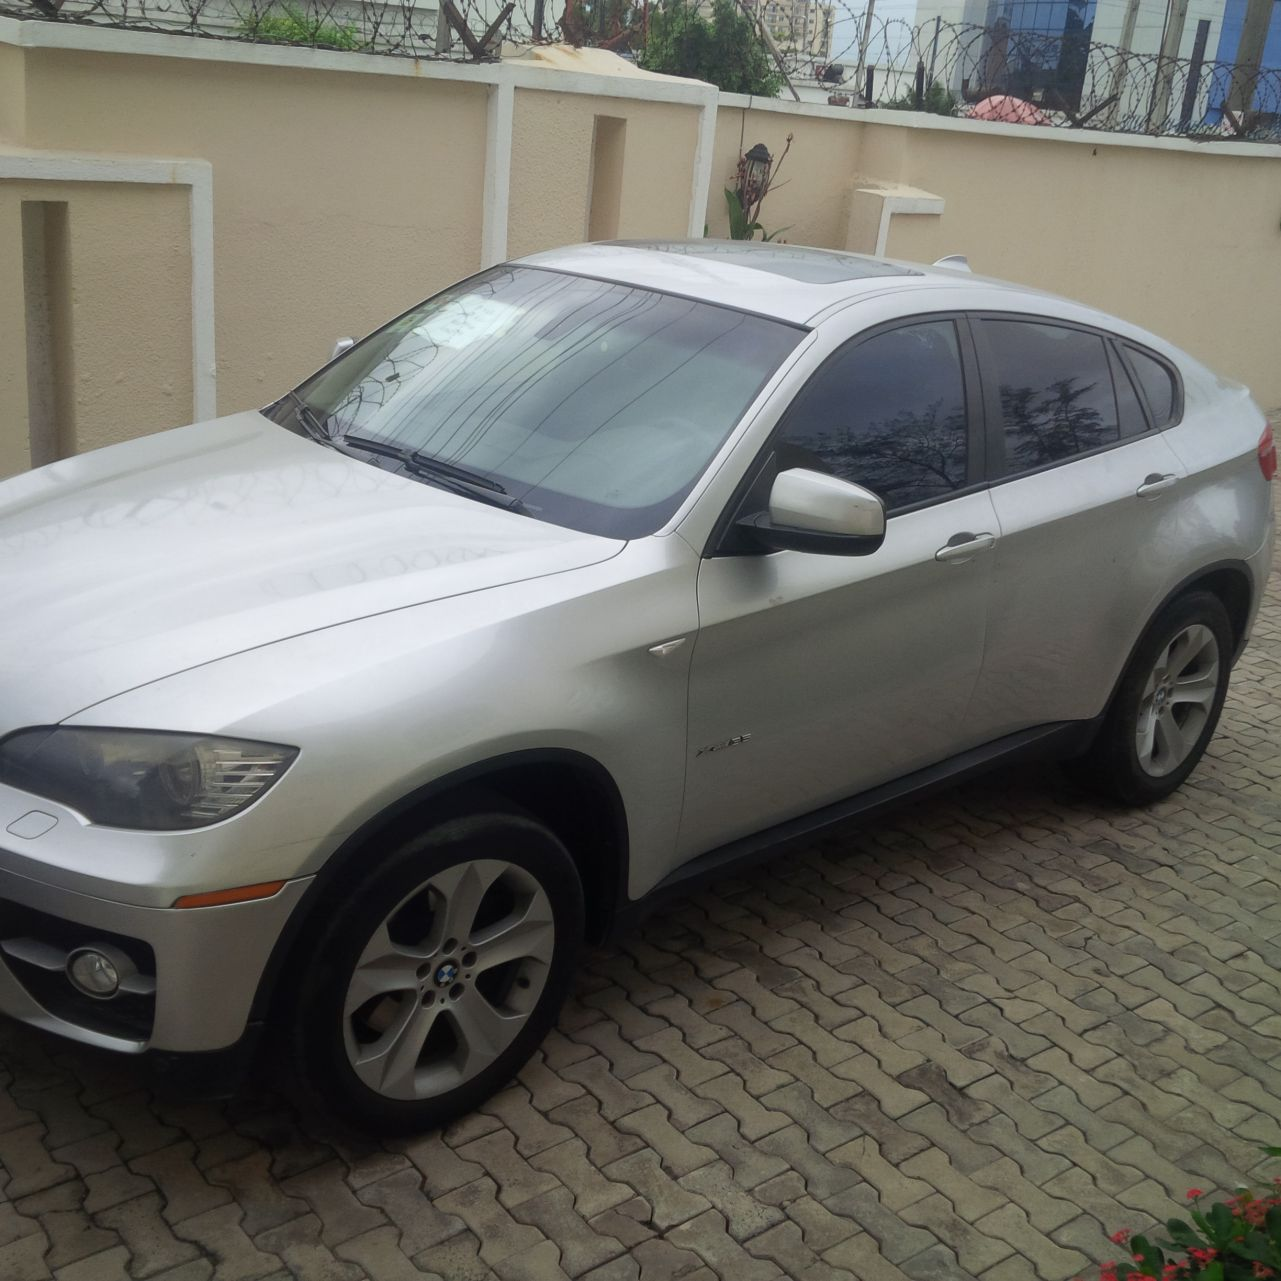 Bmw X6 Used: Bmw X6 Suv